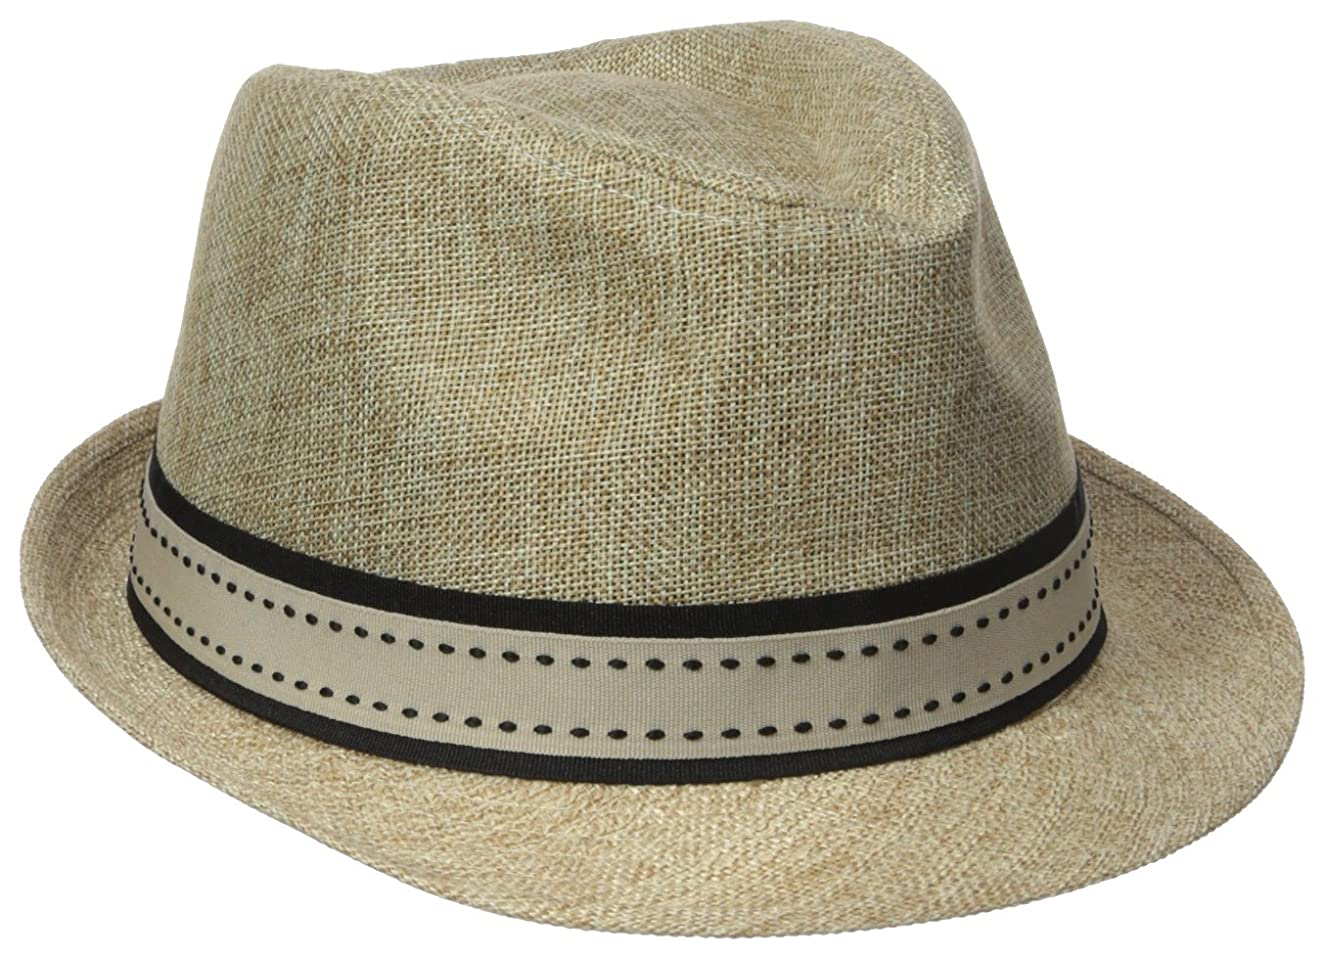 d6d842be6131df ... Henschel Men's Low Crown Fedora with Fancy Stitch Band and Loop